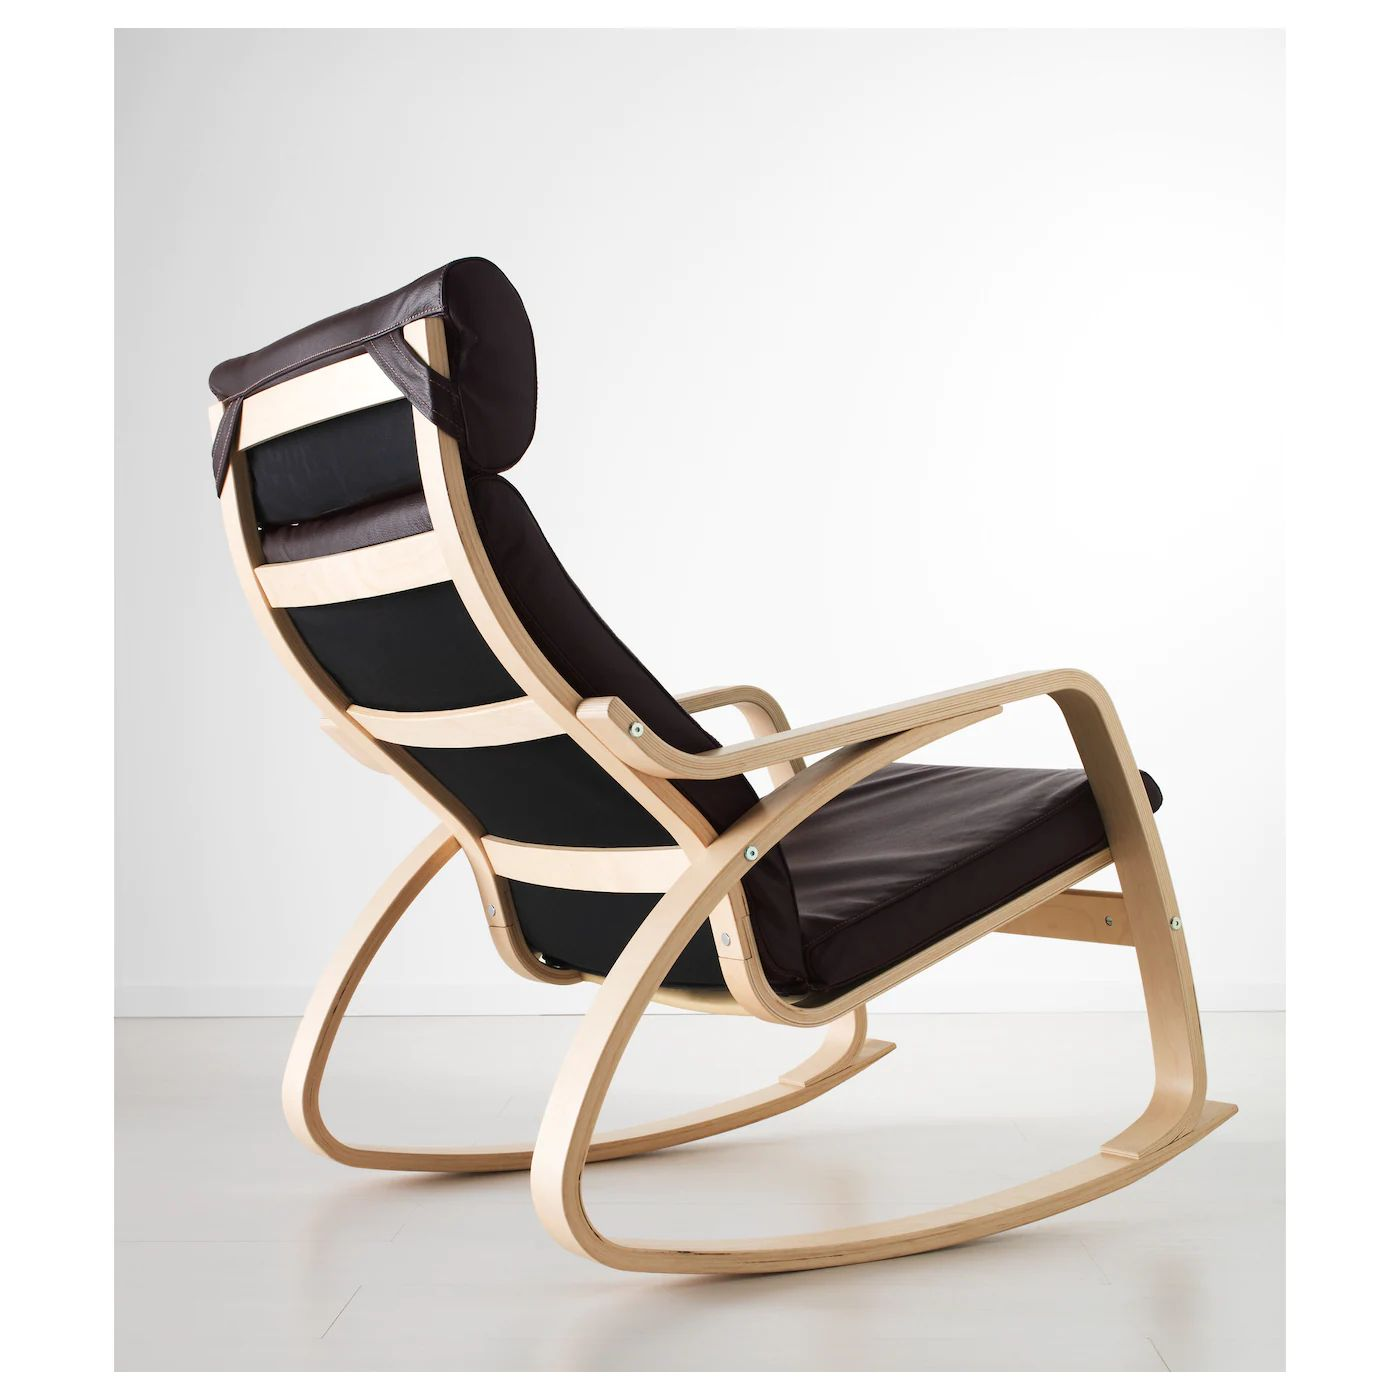 Ikea lillberg rocking chair - Ikea Poang Rocking Chair Ikea Po Ng Rocking Chair The High Back Gives Good Support Download